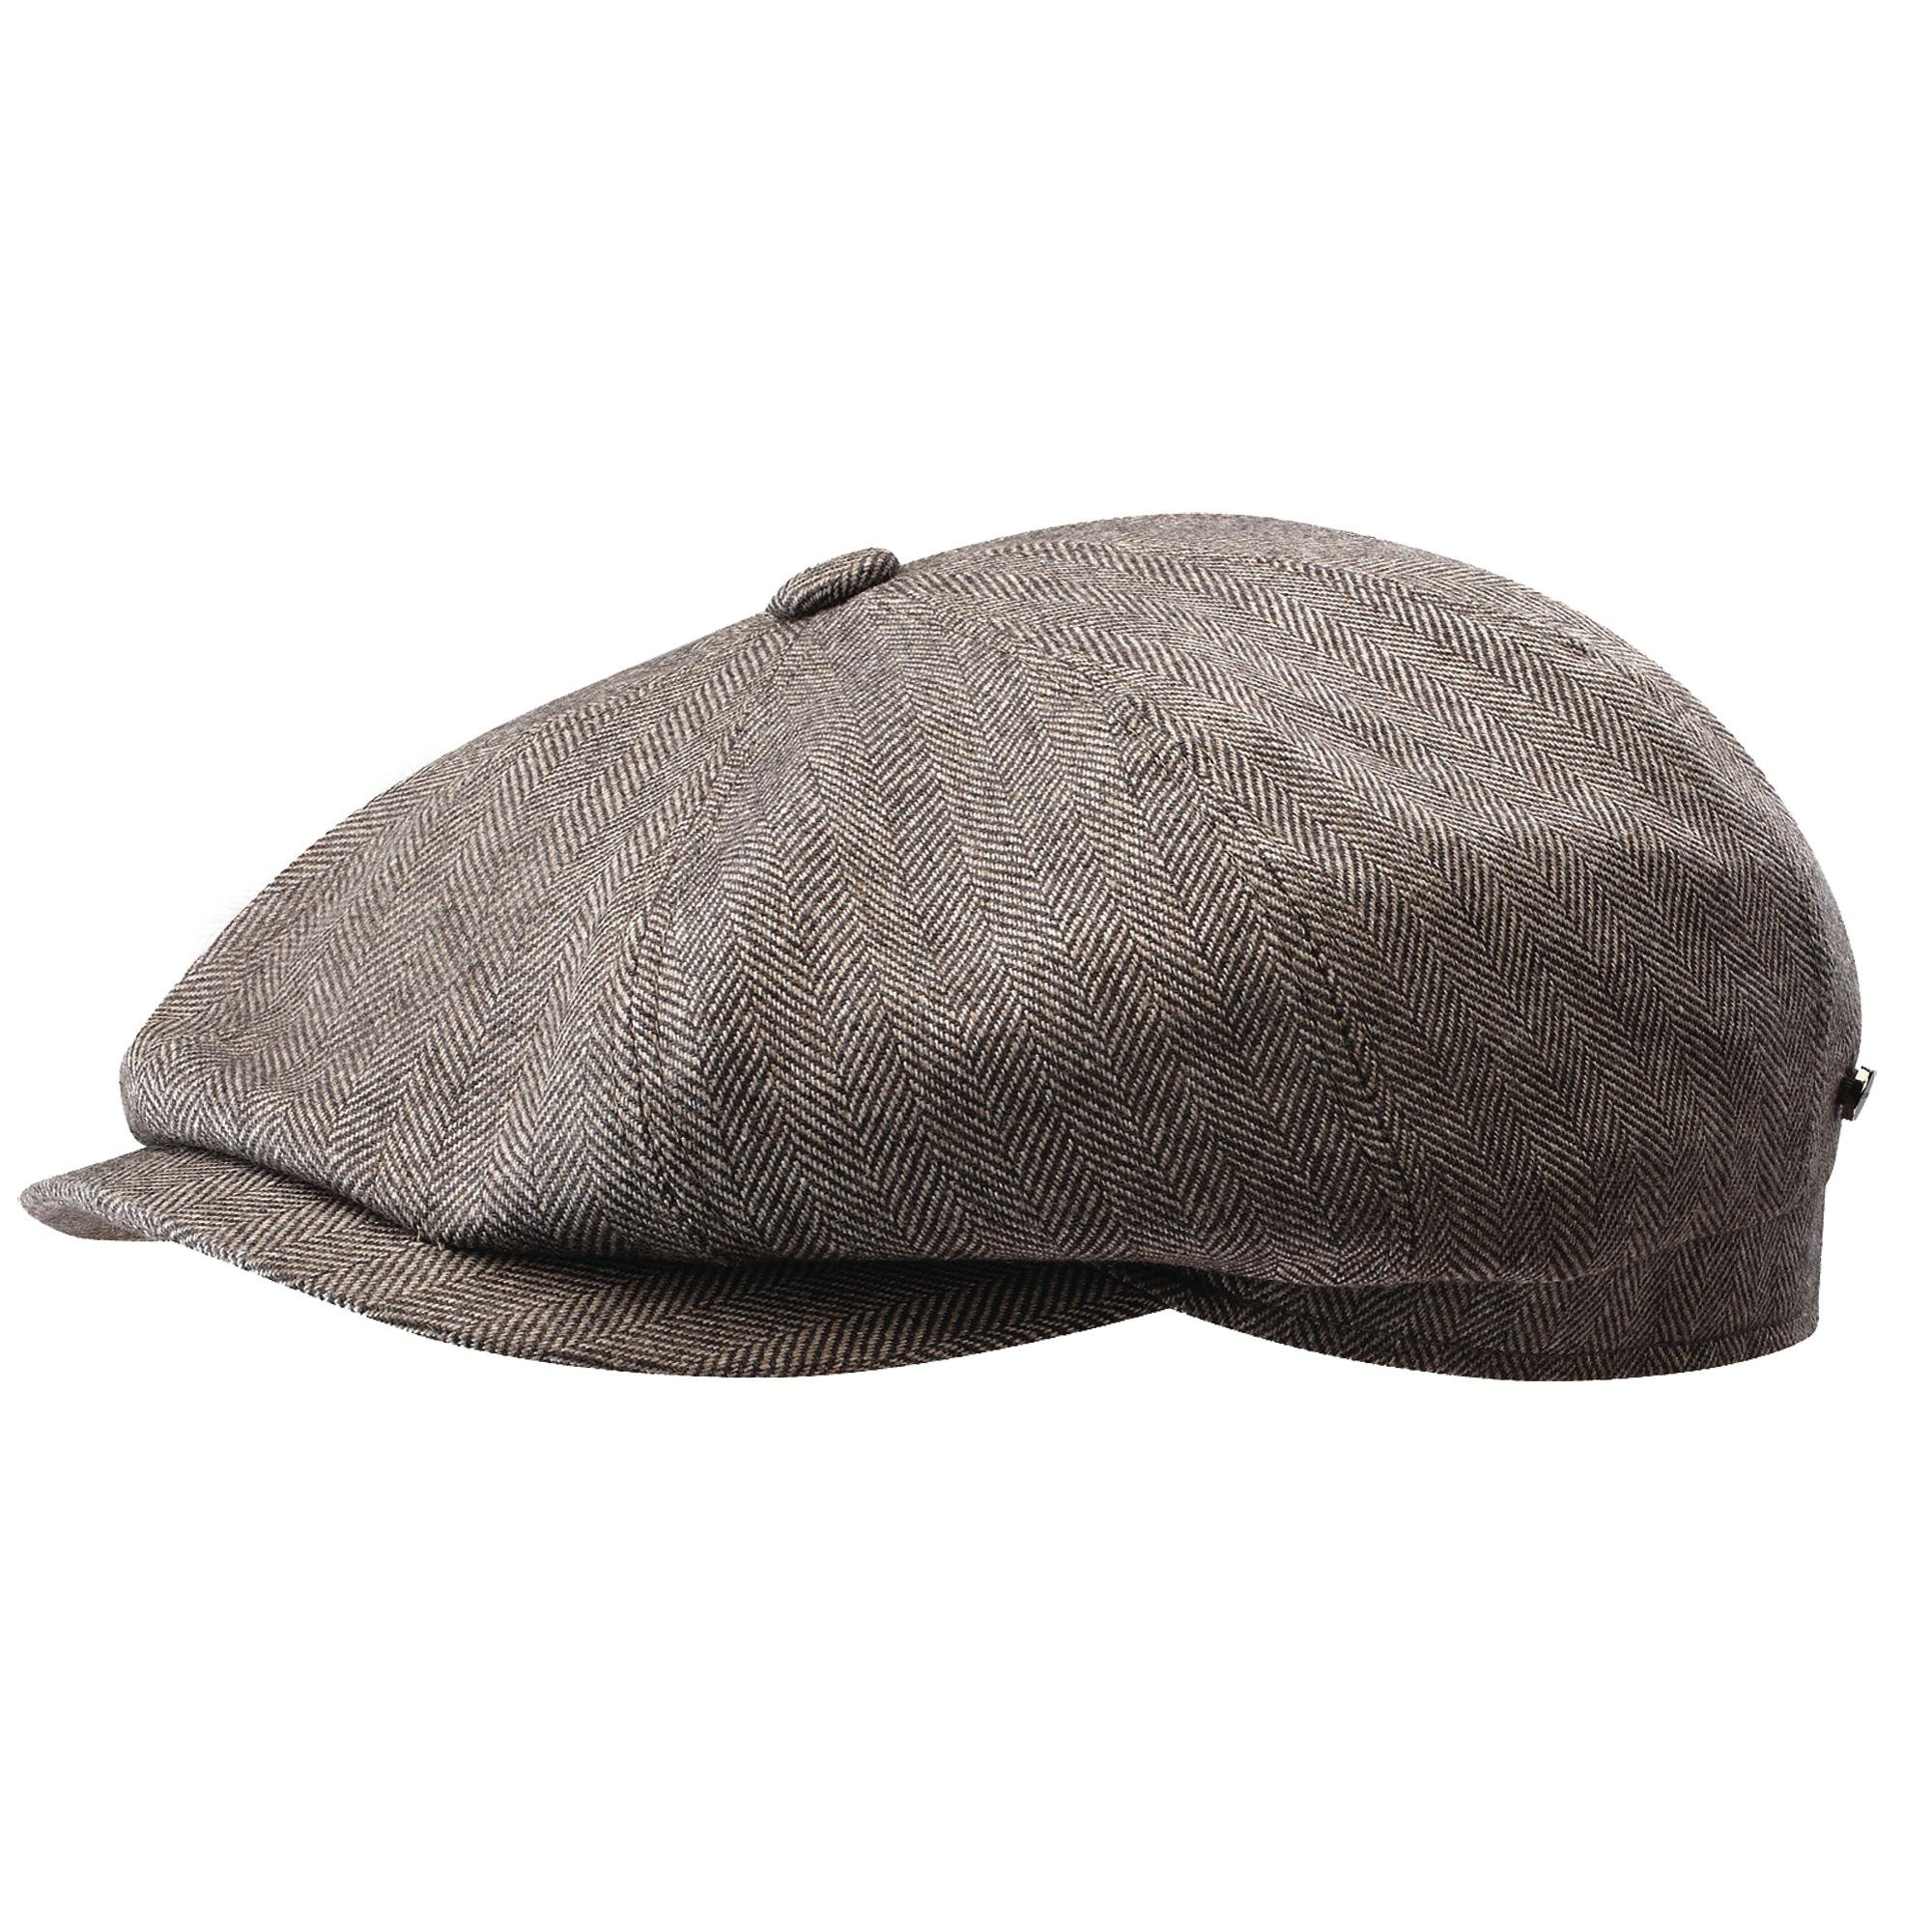 3f8a636073ff9 Galleon - Stetson Men s Cashmere Blend 8 4 Cap With Silk Lining ...